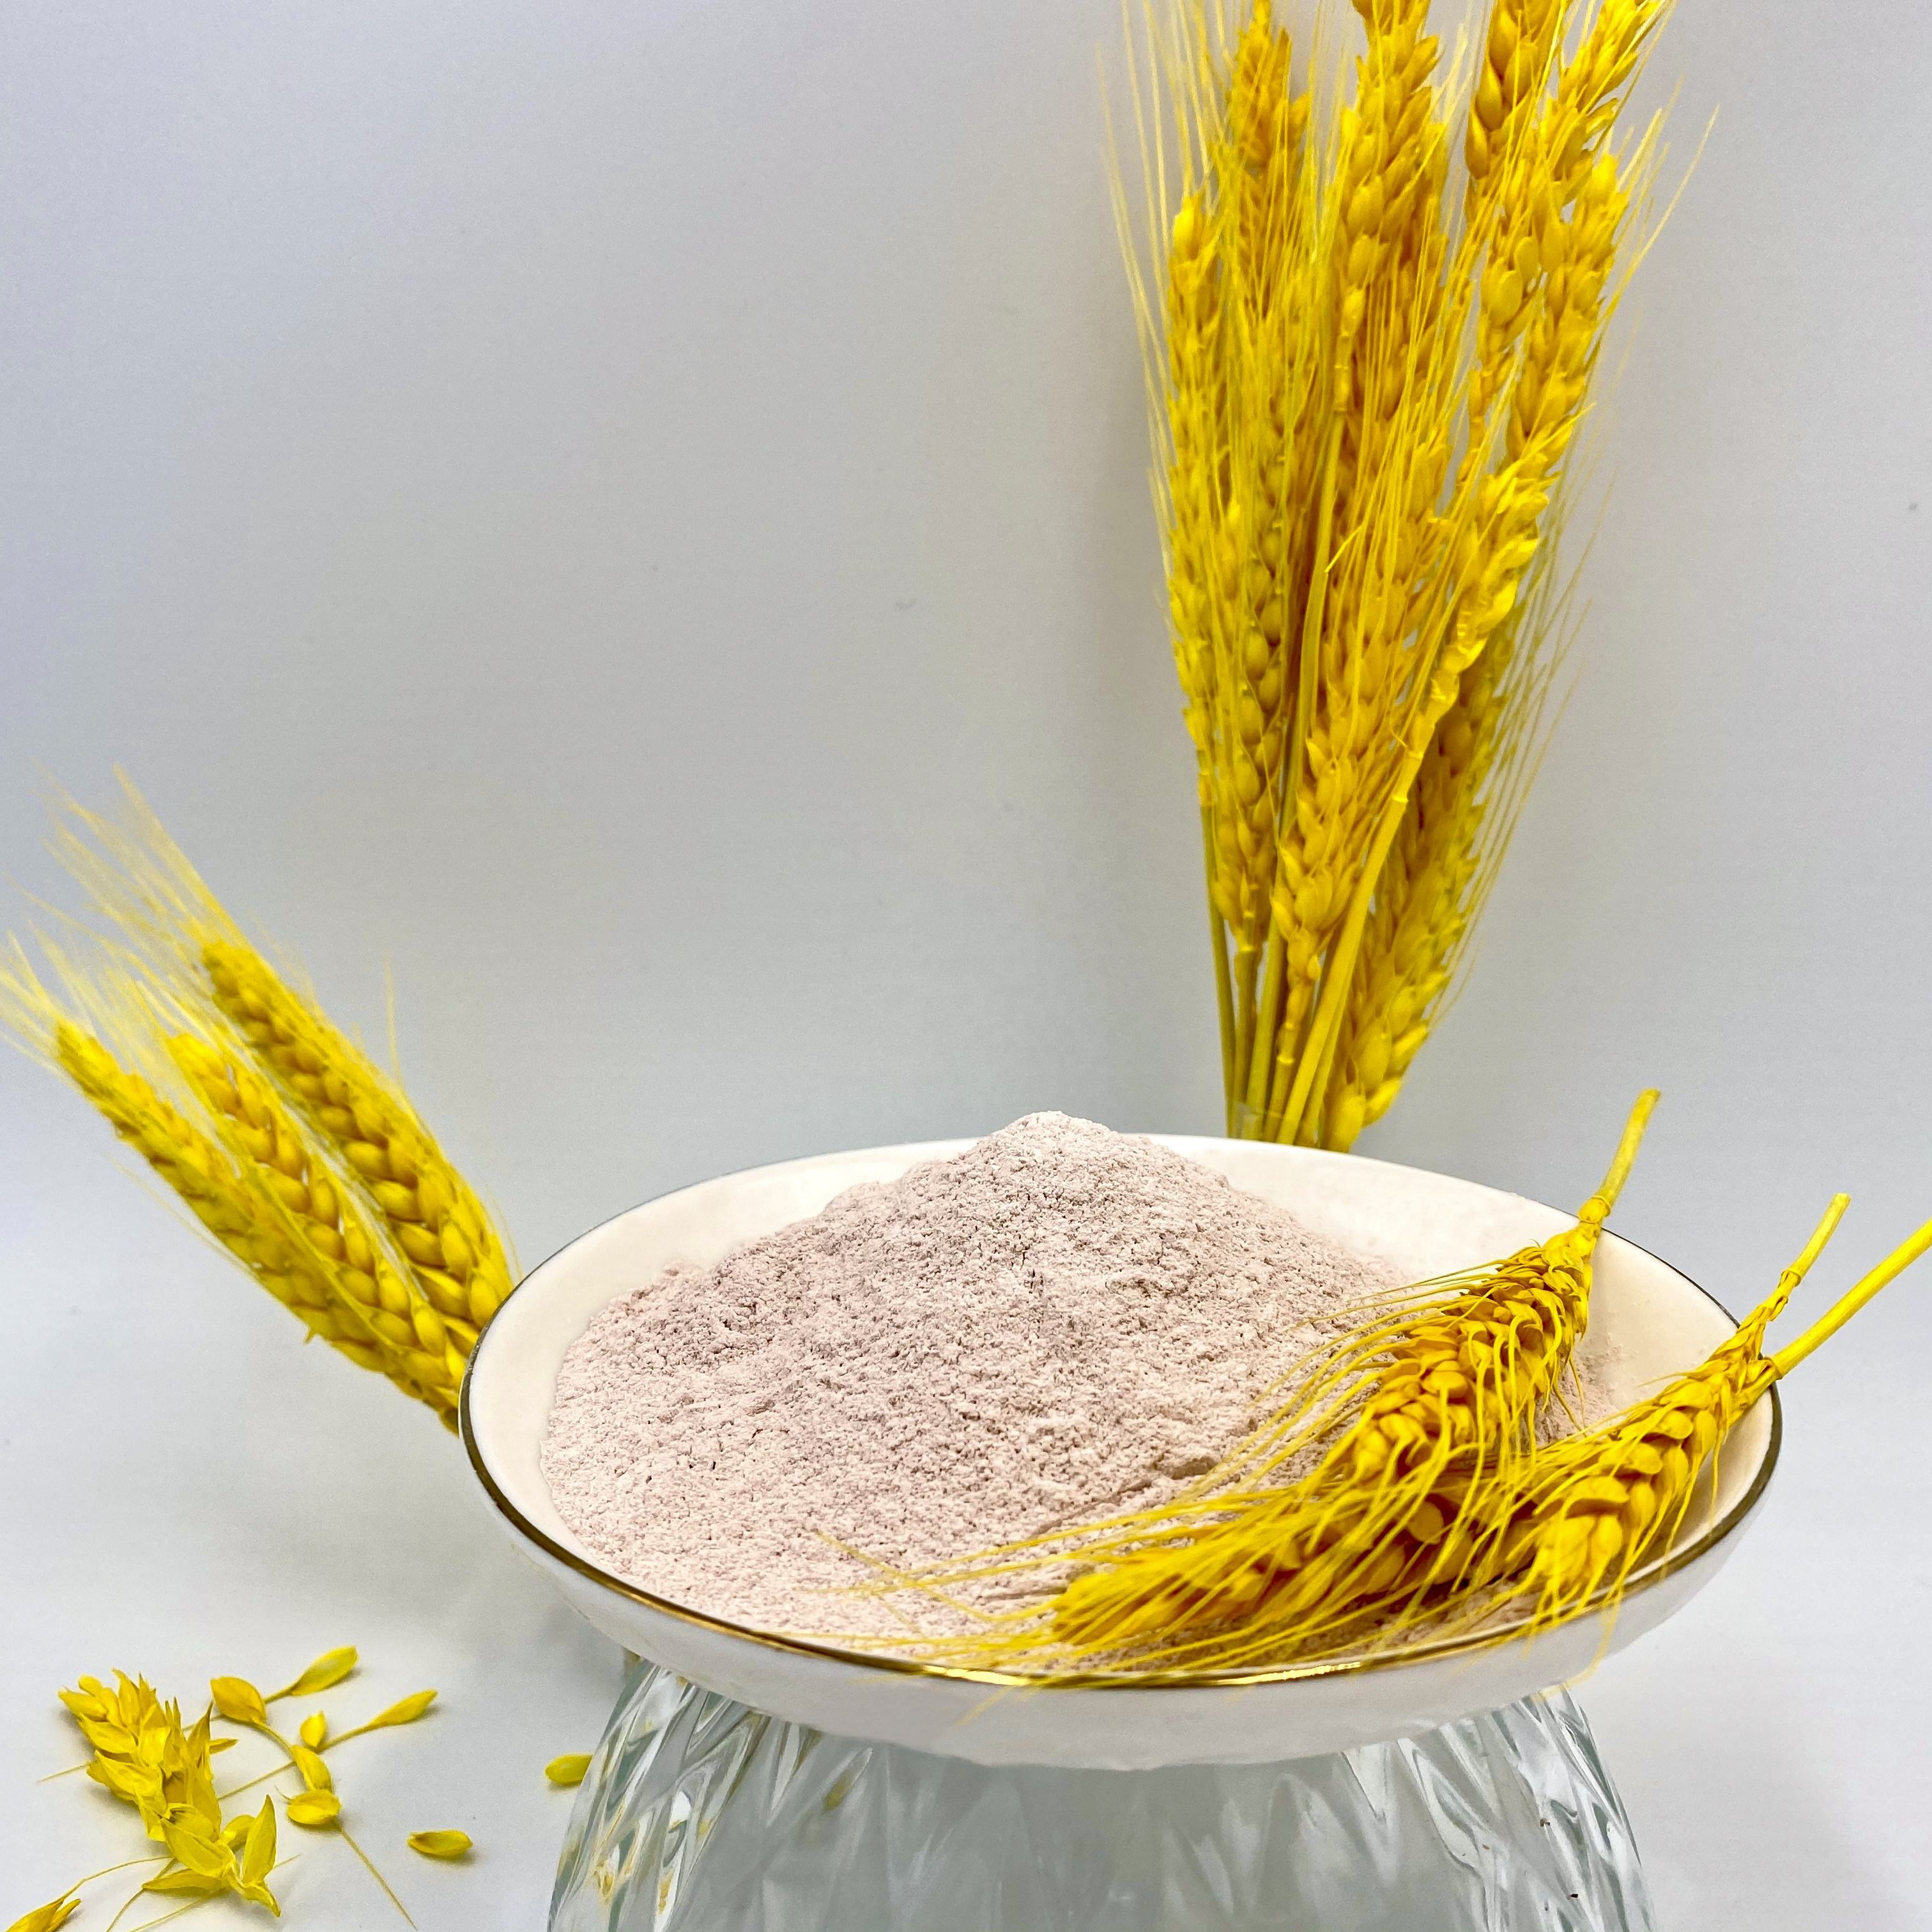 Activated Bleaching Earth Powder Fuller Earth Food Grade Bentonite Clay for Edible Oil Refining Purification Decoloring